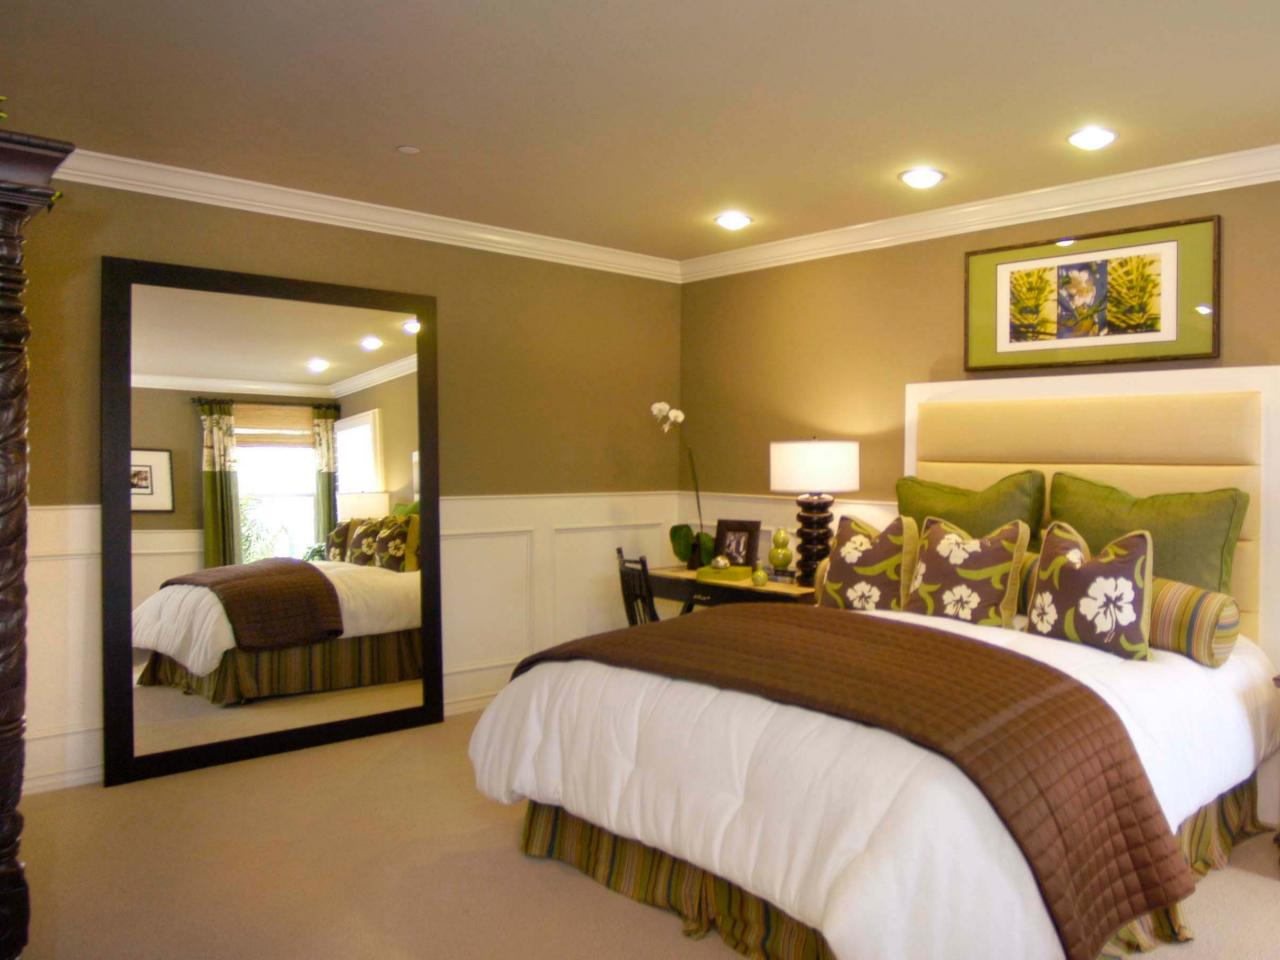 master bedroom lights bedroom lighting styles pictures amp design ideas hgtv 12295